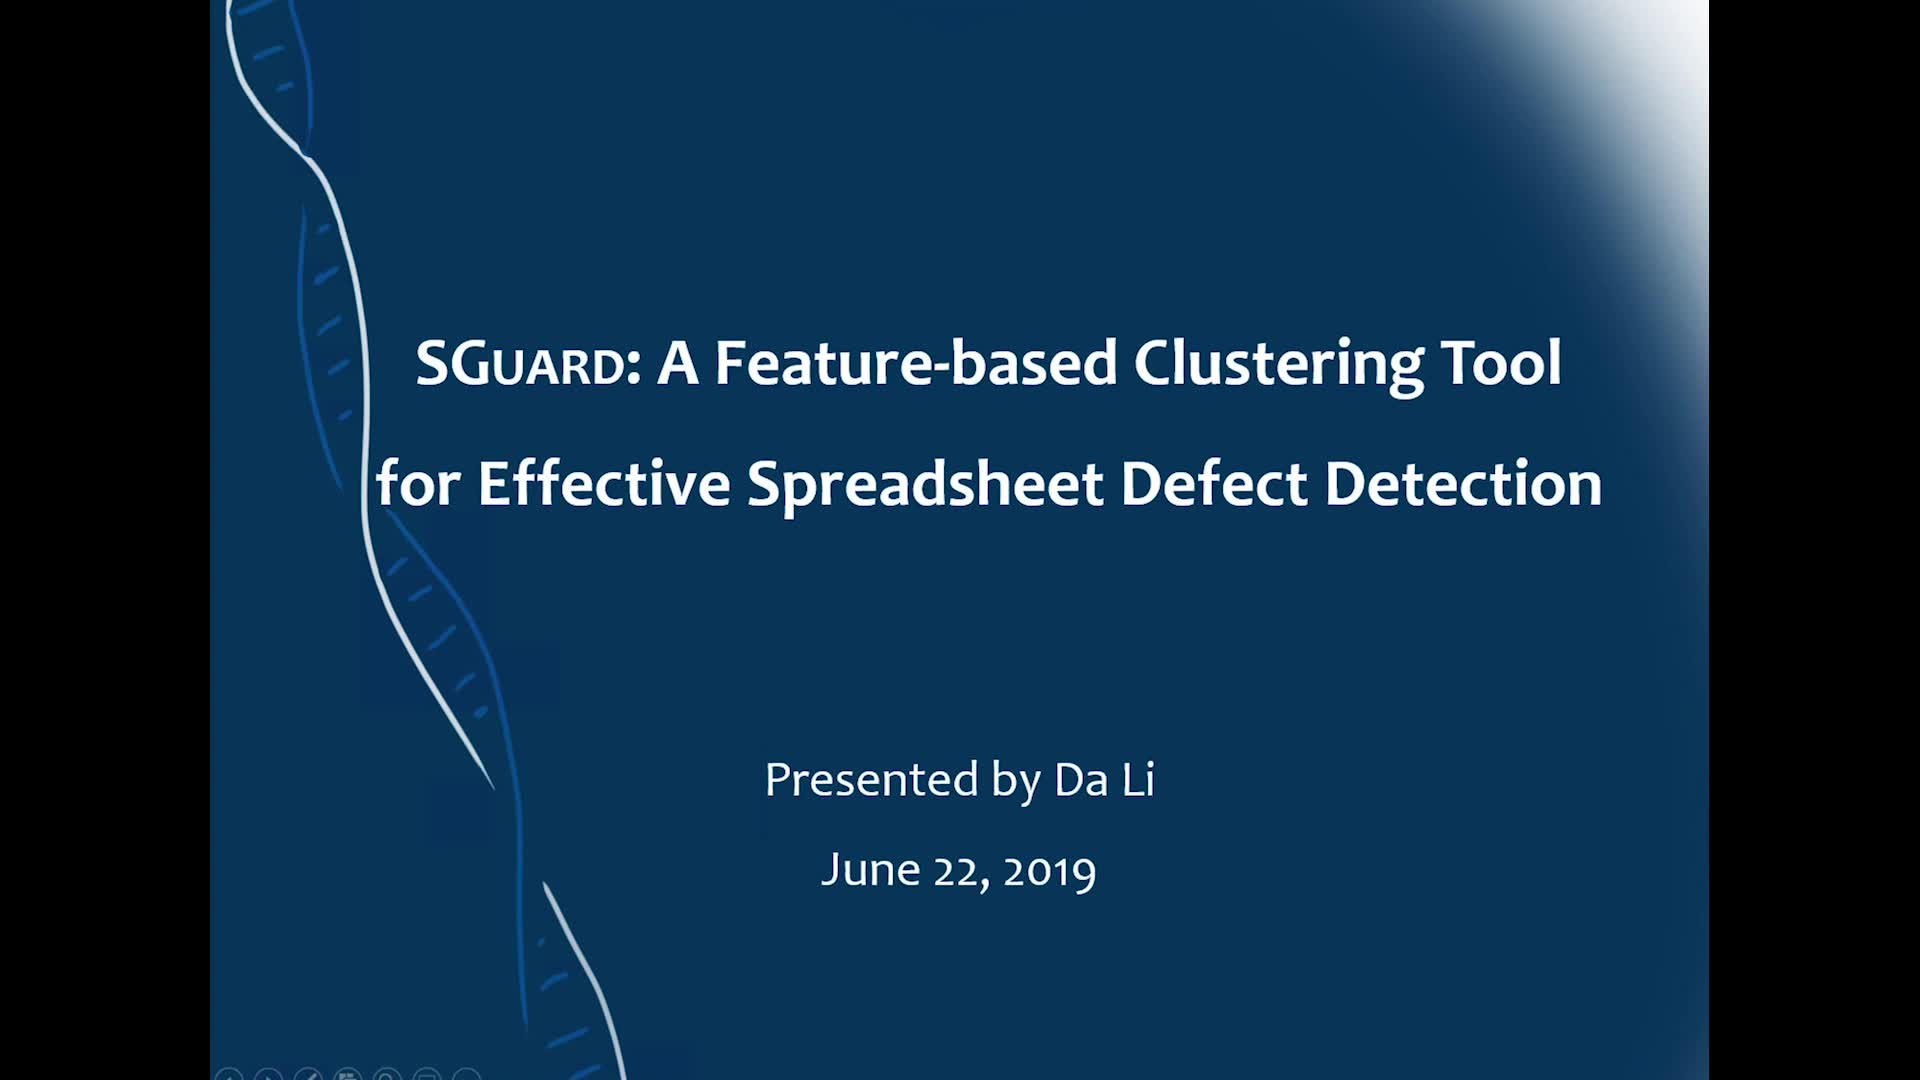 SGUARD: A Feature-based Clustering Tool for Effective Spreadsheet Defect Detect